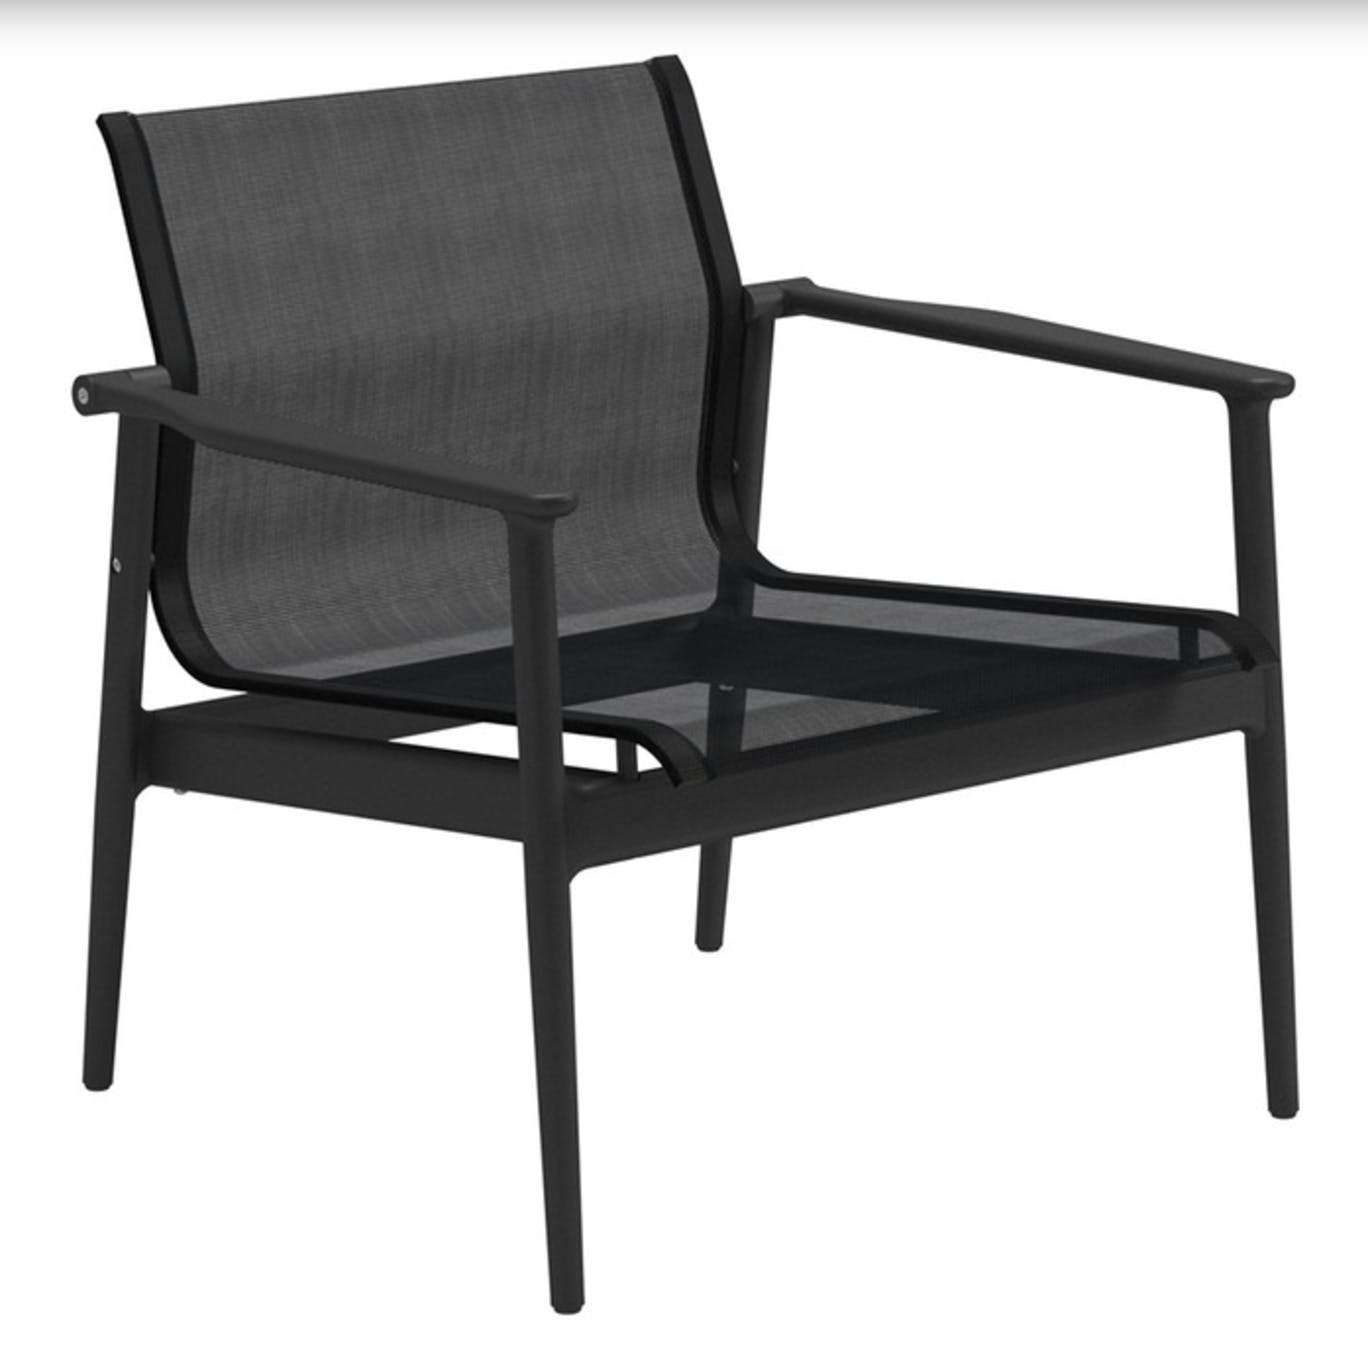 180 Lounge Chair